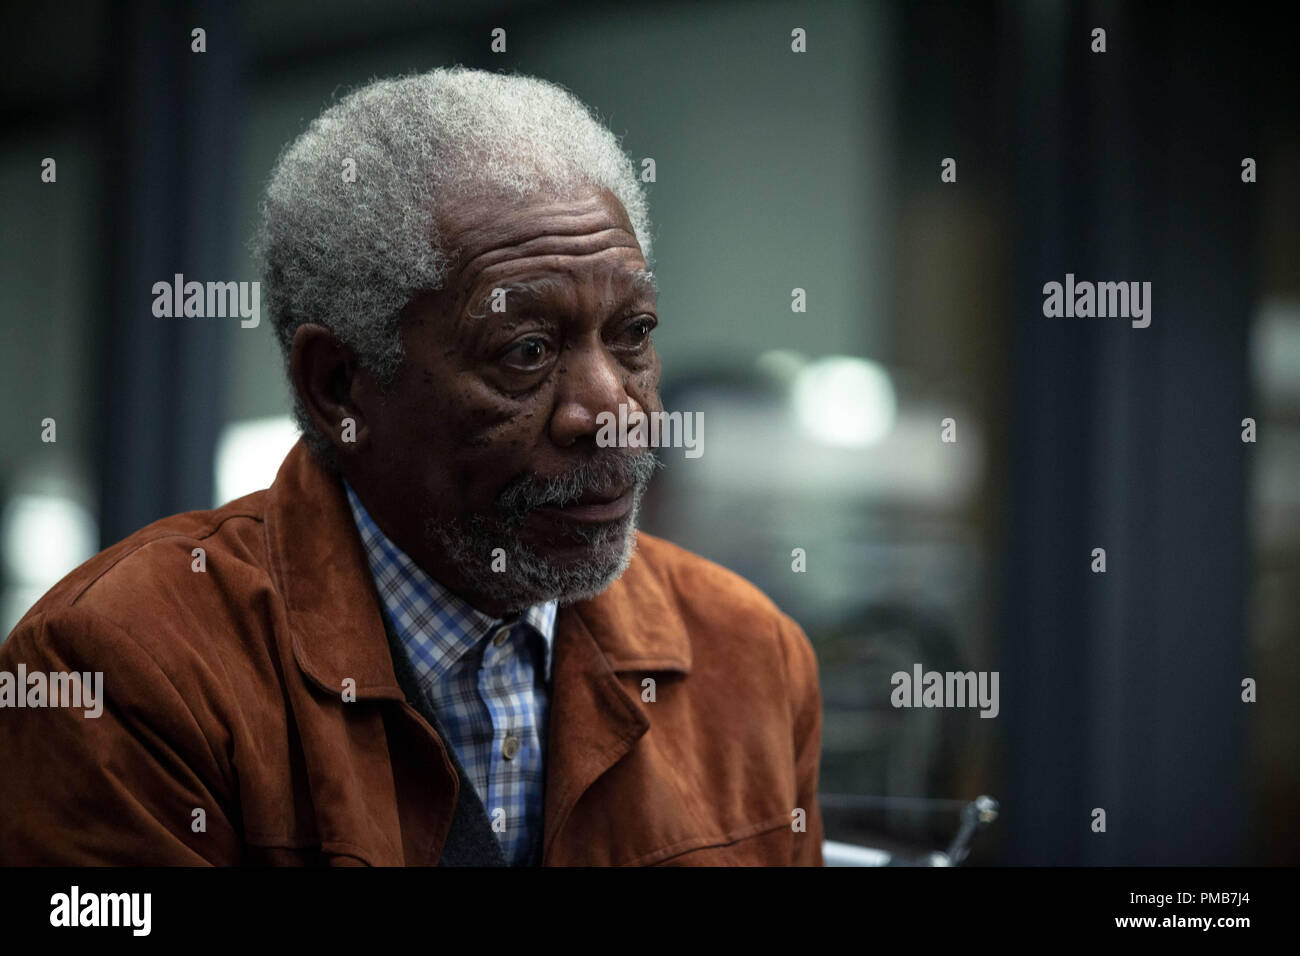 MORGAN FREEMAN as Joseph Tagger in Alcon Entertainment's sci-fi thriller 'TRANSCENDENCE,' a Warner Bros. Pictures release. - Stock Image